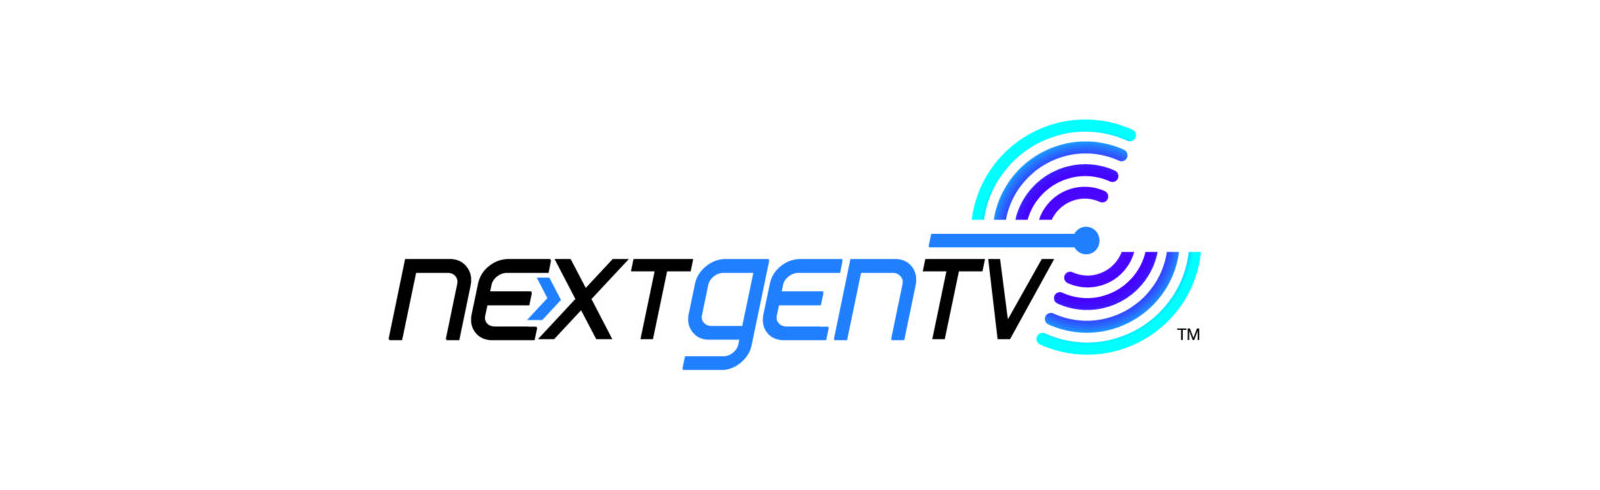 The CTA has announced the test suite specifications for NextGen TV on 2021 TV models